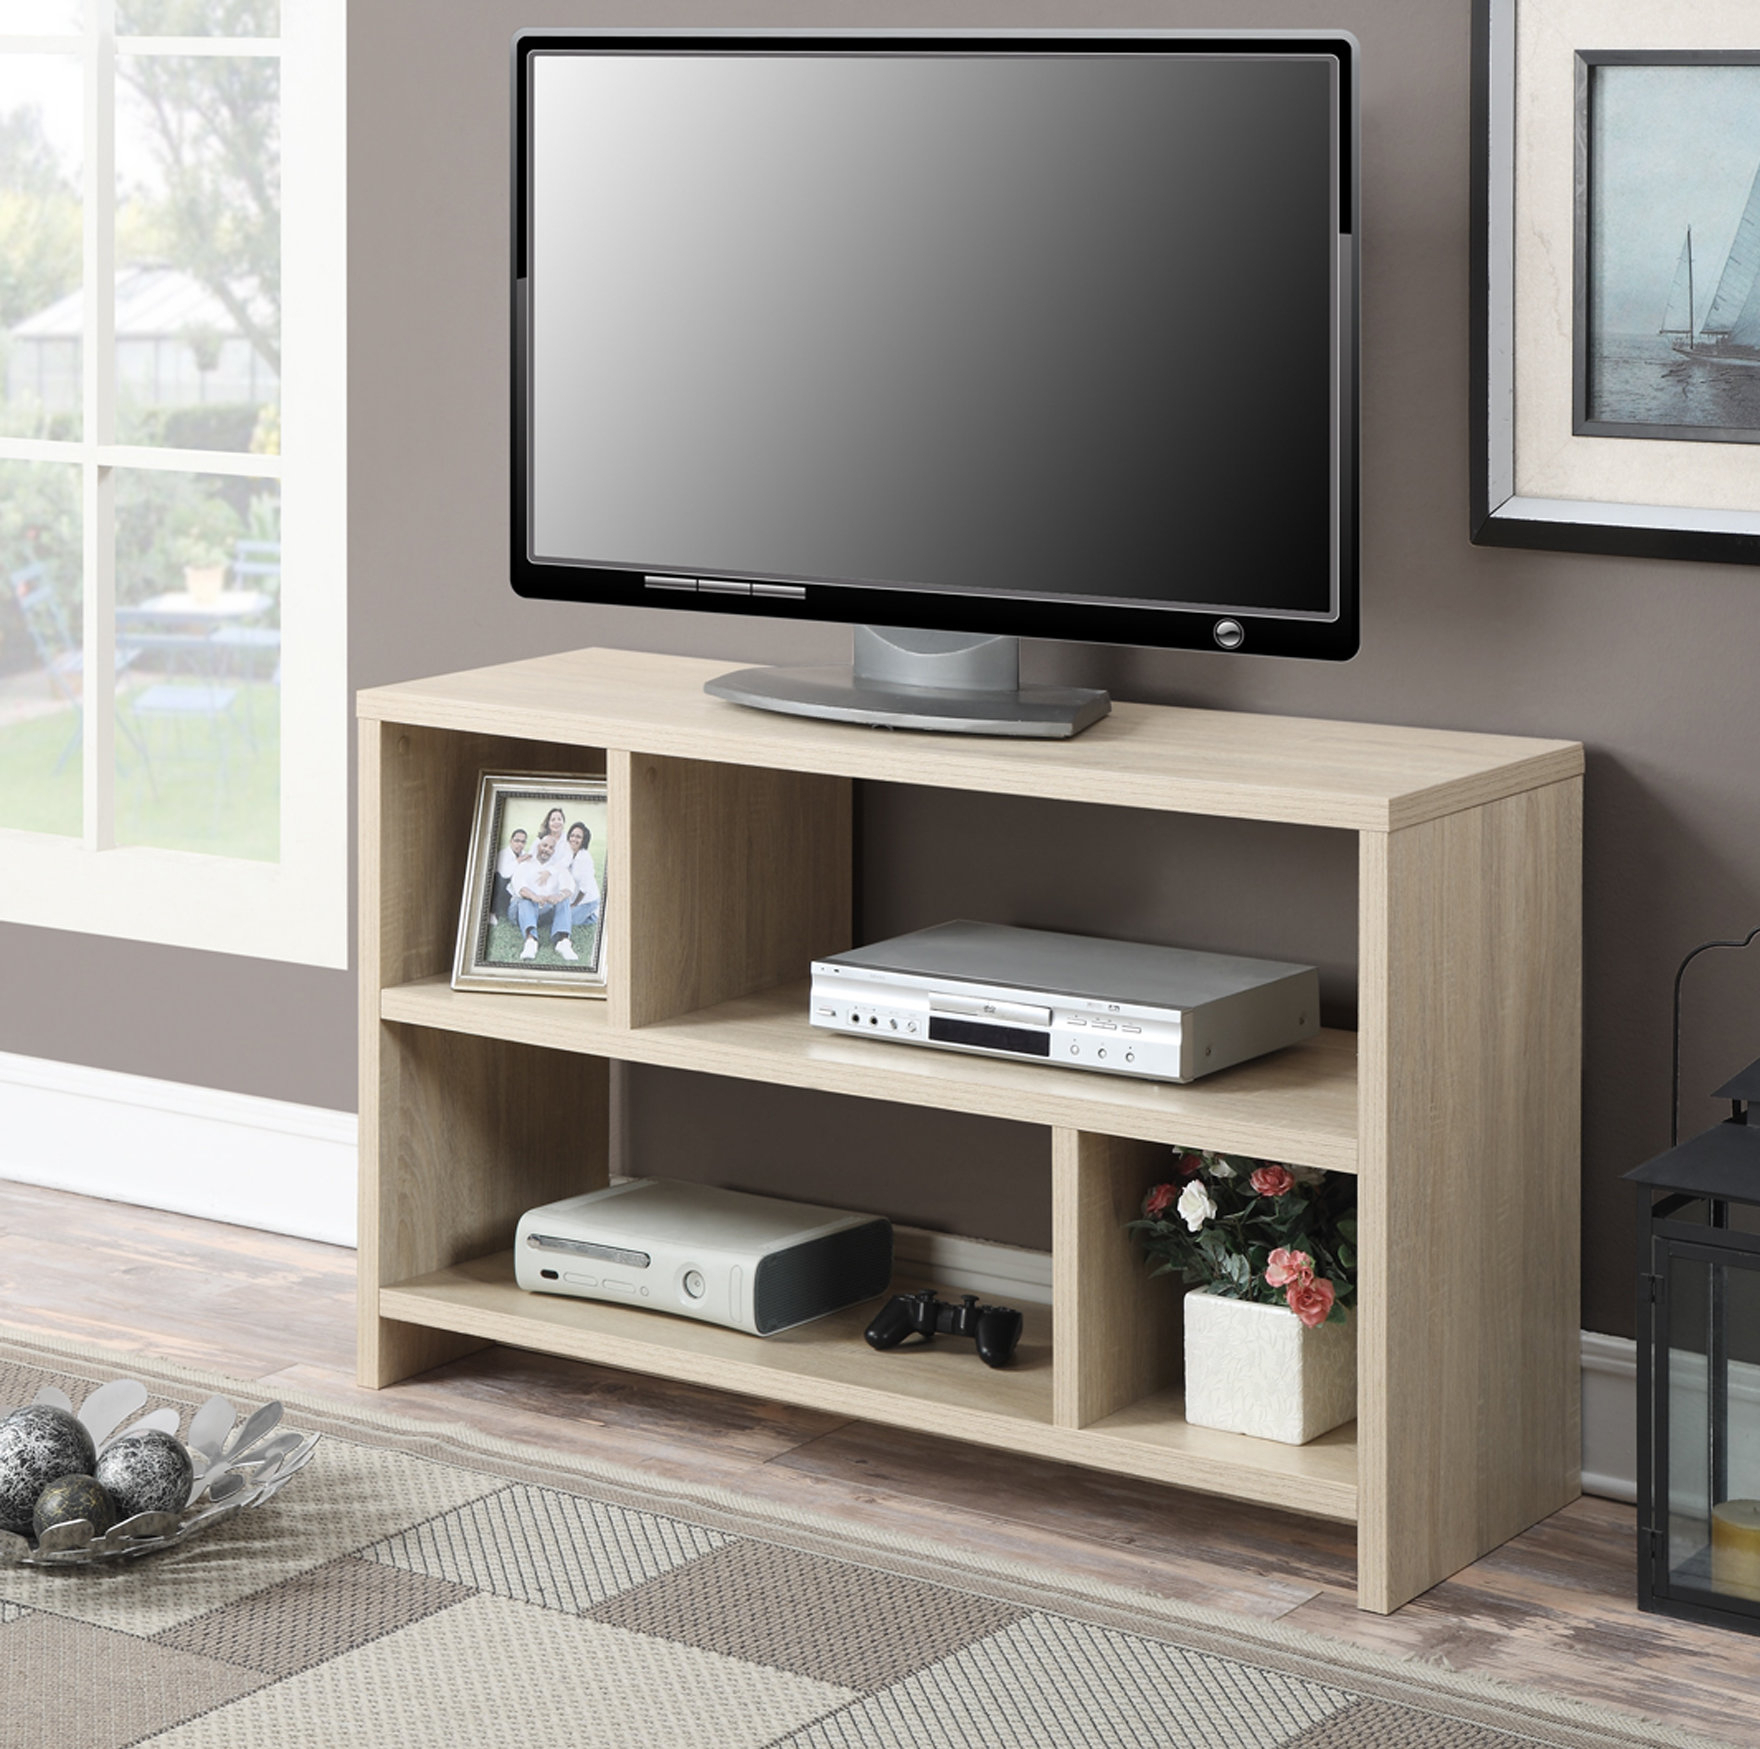 "Inspiration about D'aulizio Tv Stand For Tvs Up To 43"" Inside Most Recently Released Ericka Tv Stands For Tvs Up To 42"" (#2 of 20)"